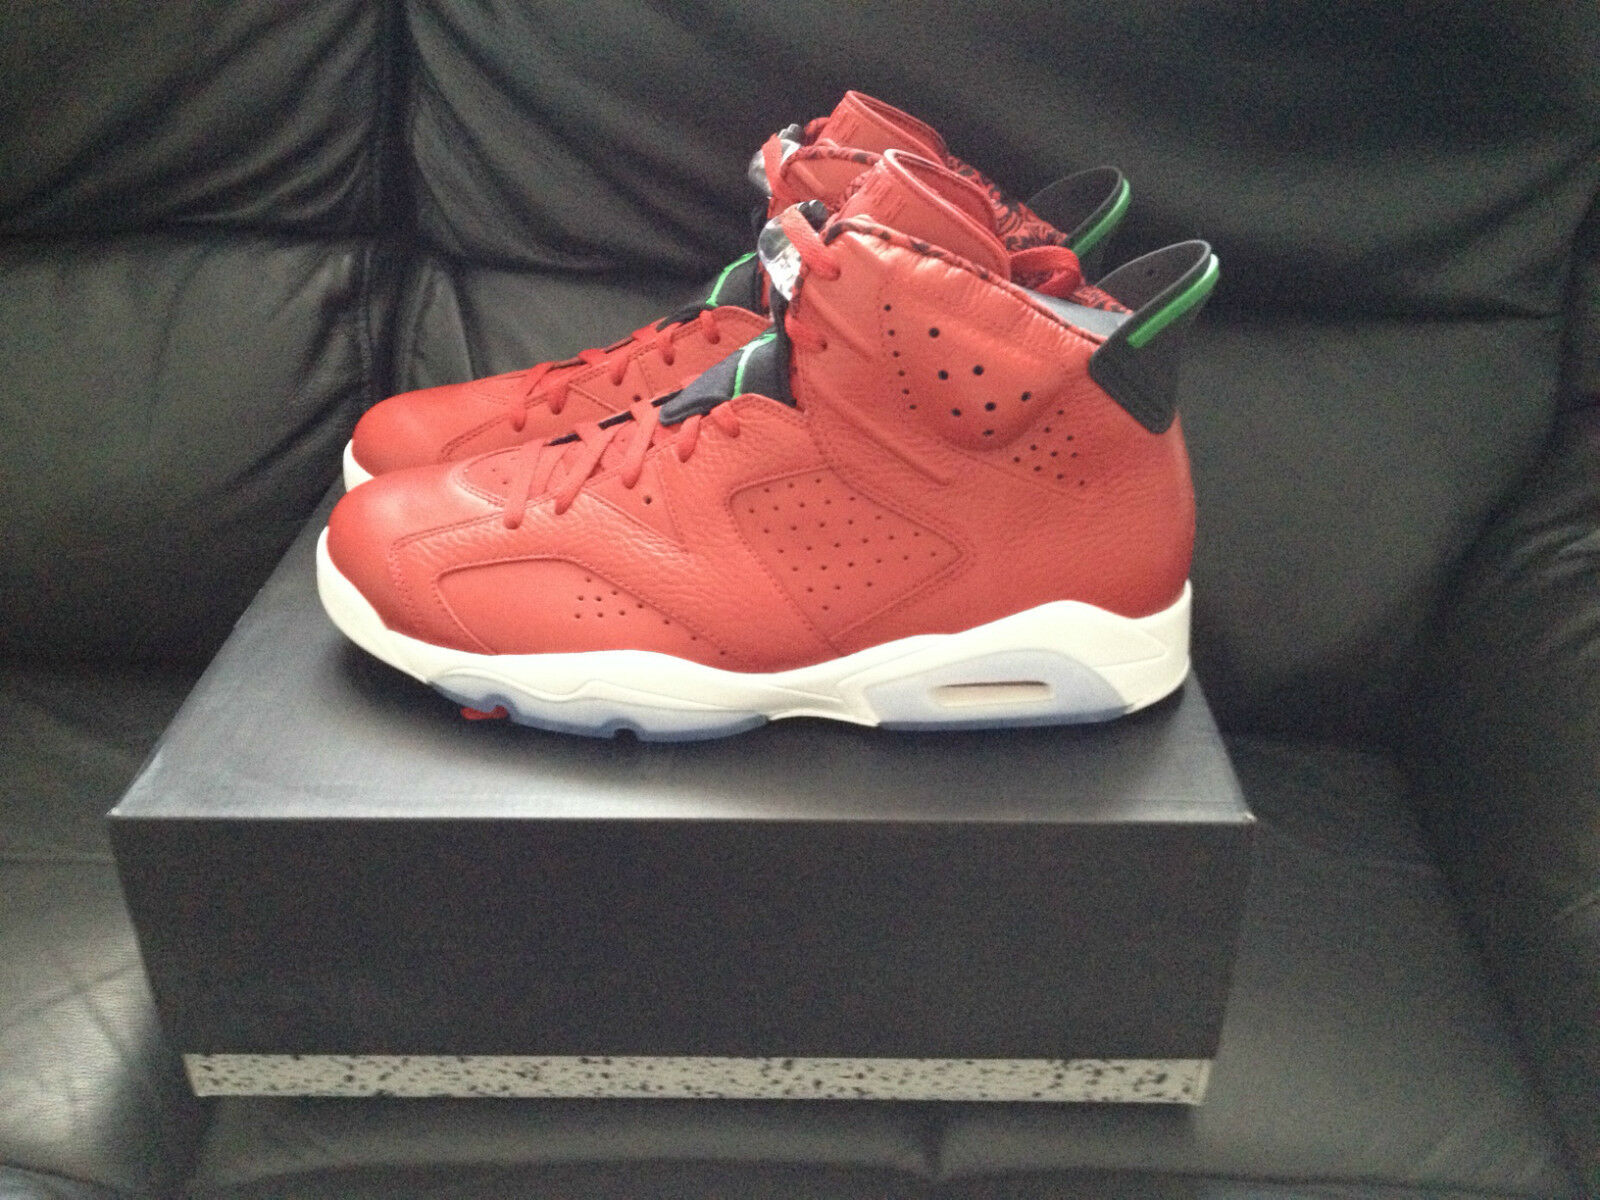 Nike Air Jordan 6 Retro Spizike   Herren Schuhes Trainers ROT UK9.5 Brand New LOOK